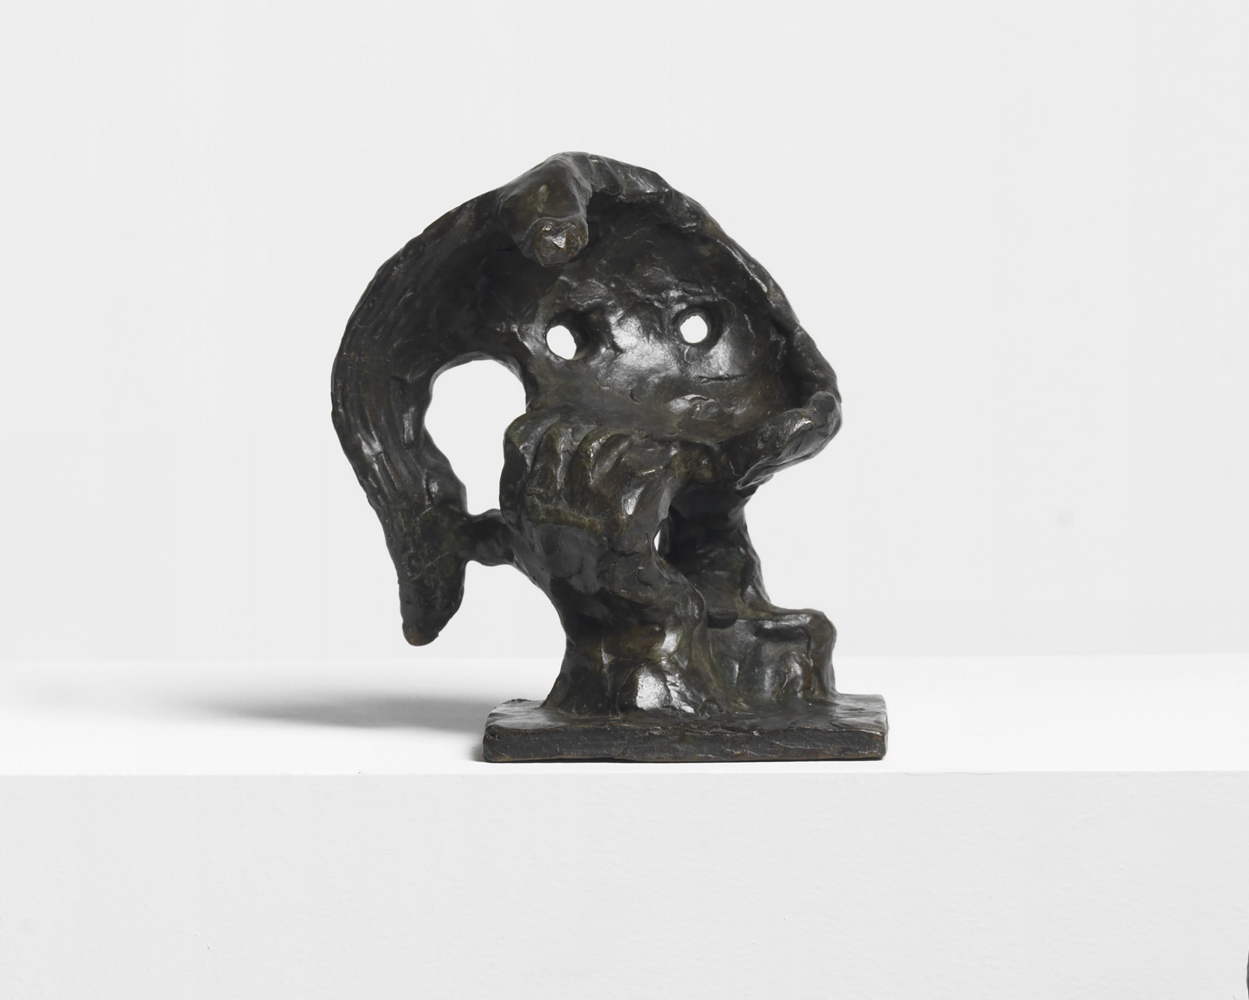 Abstract bronze sculpture depicting the head of a woman, hair, and hand.